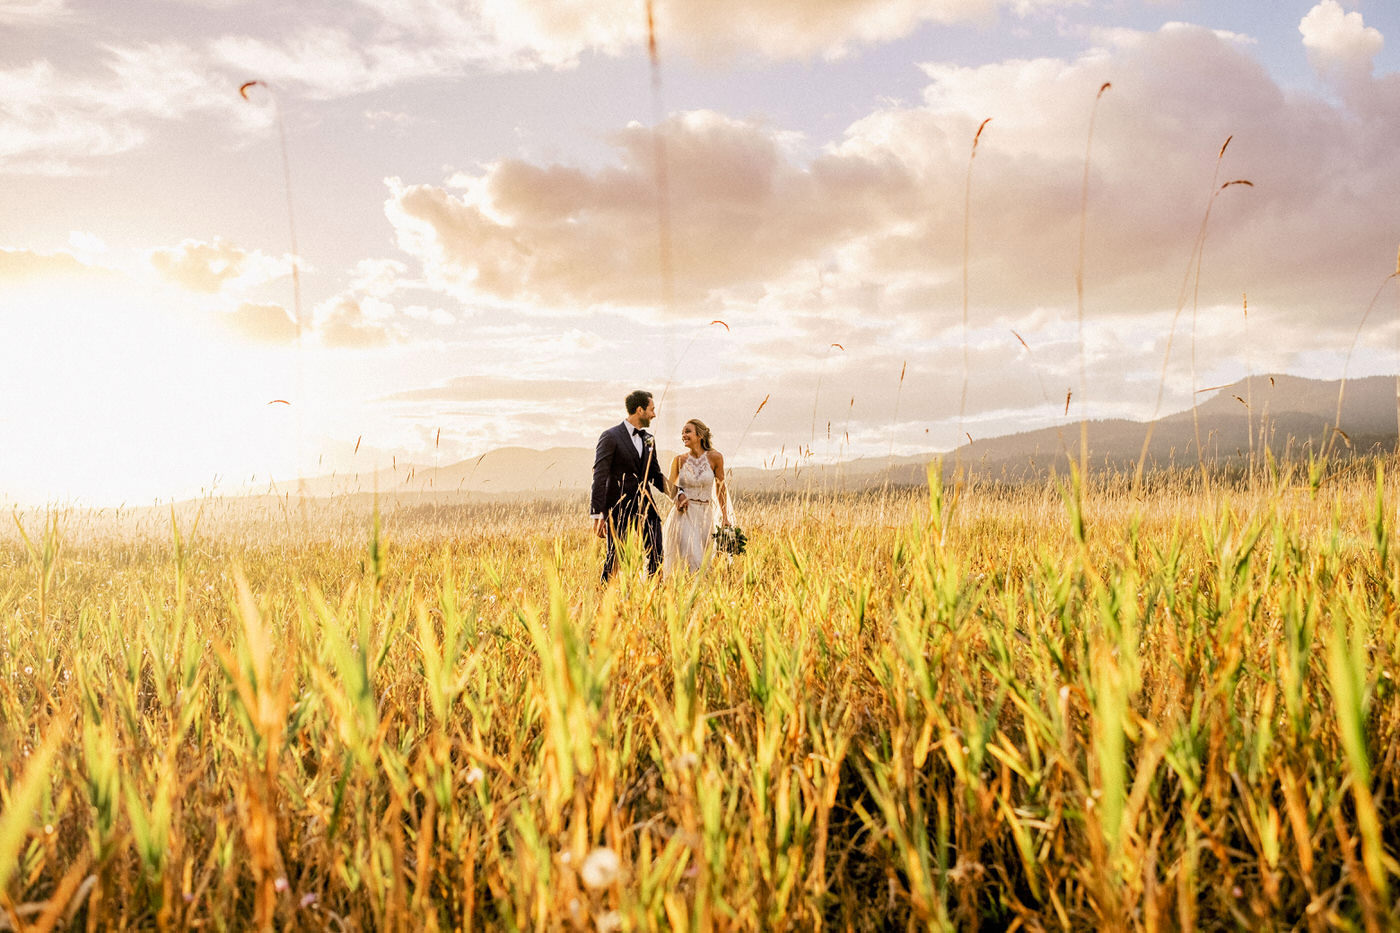 105-priest-lake-hills-resort-wedding-portrait-in-a-field.jpg